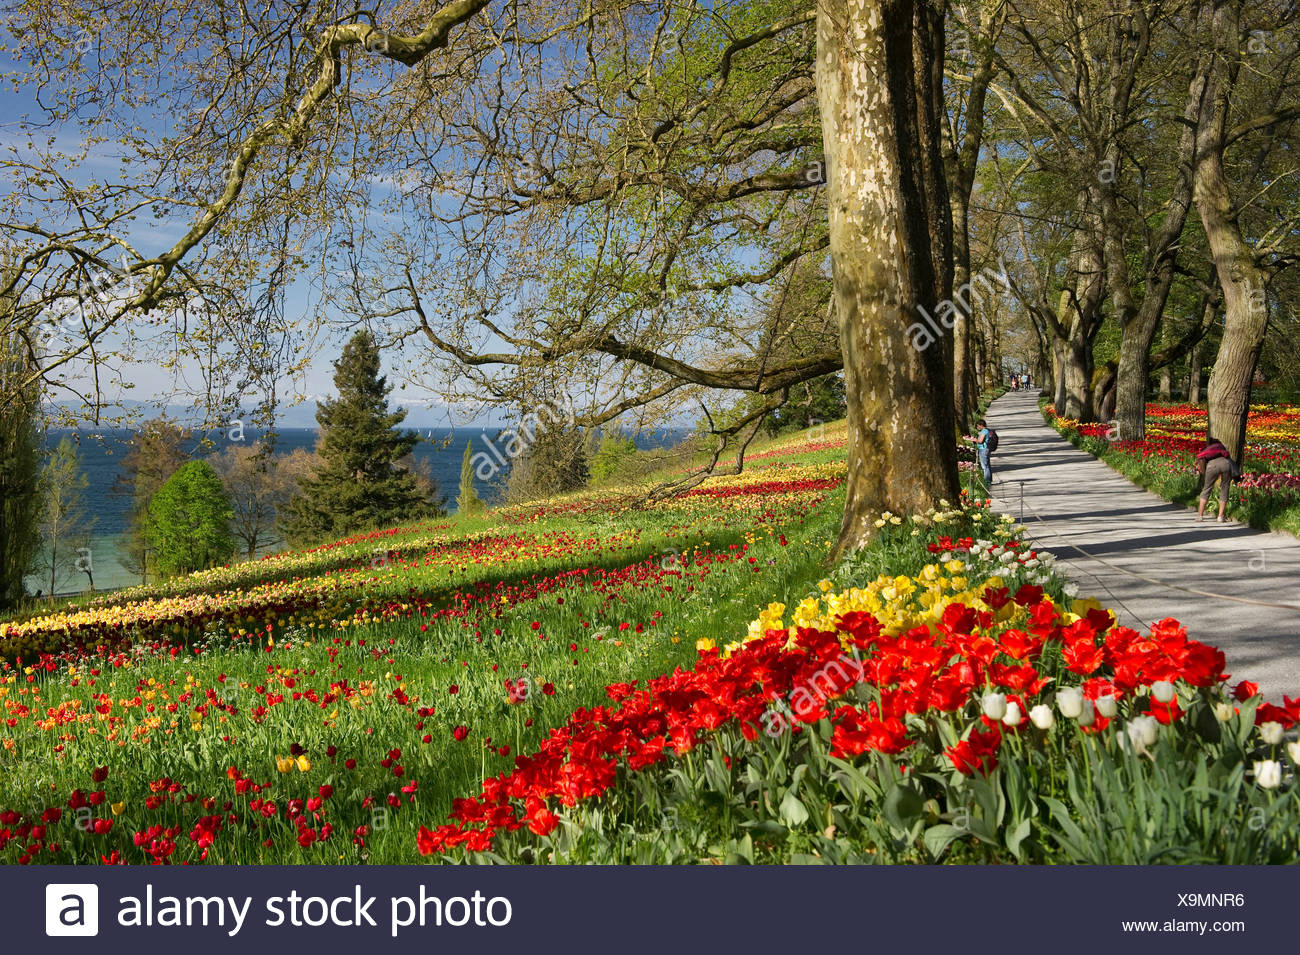 Flowers on a spring meadows, Insel Mainau, Konstanz, Baden-Württemberg, Germany - Stock Image